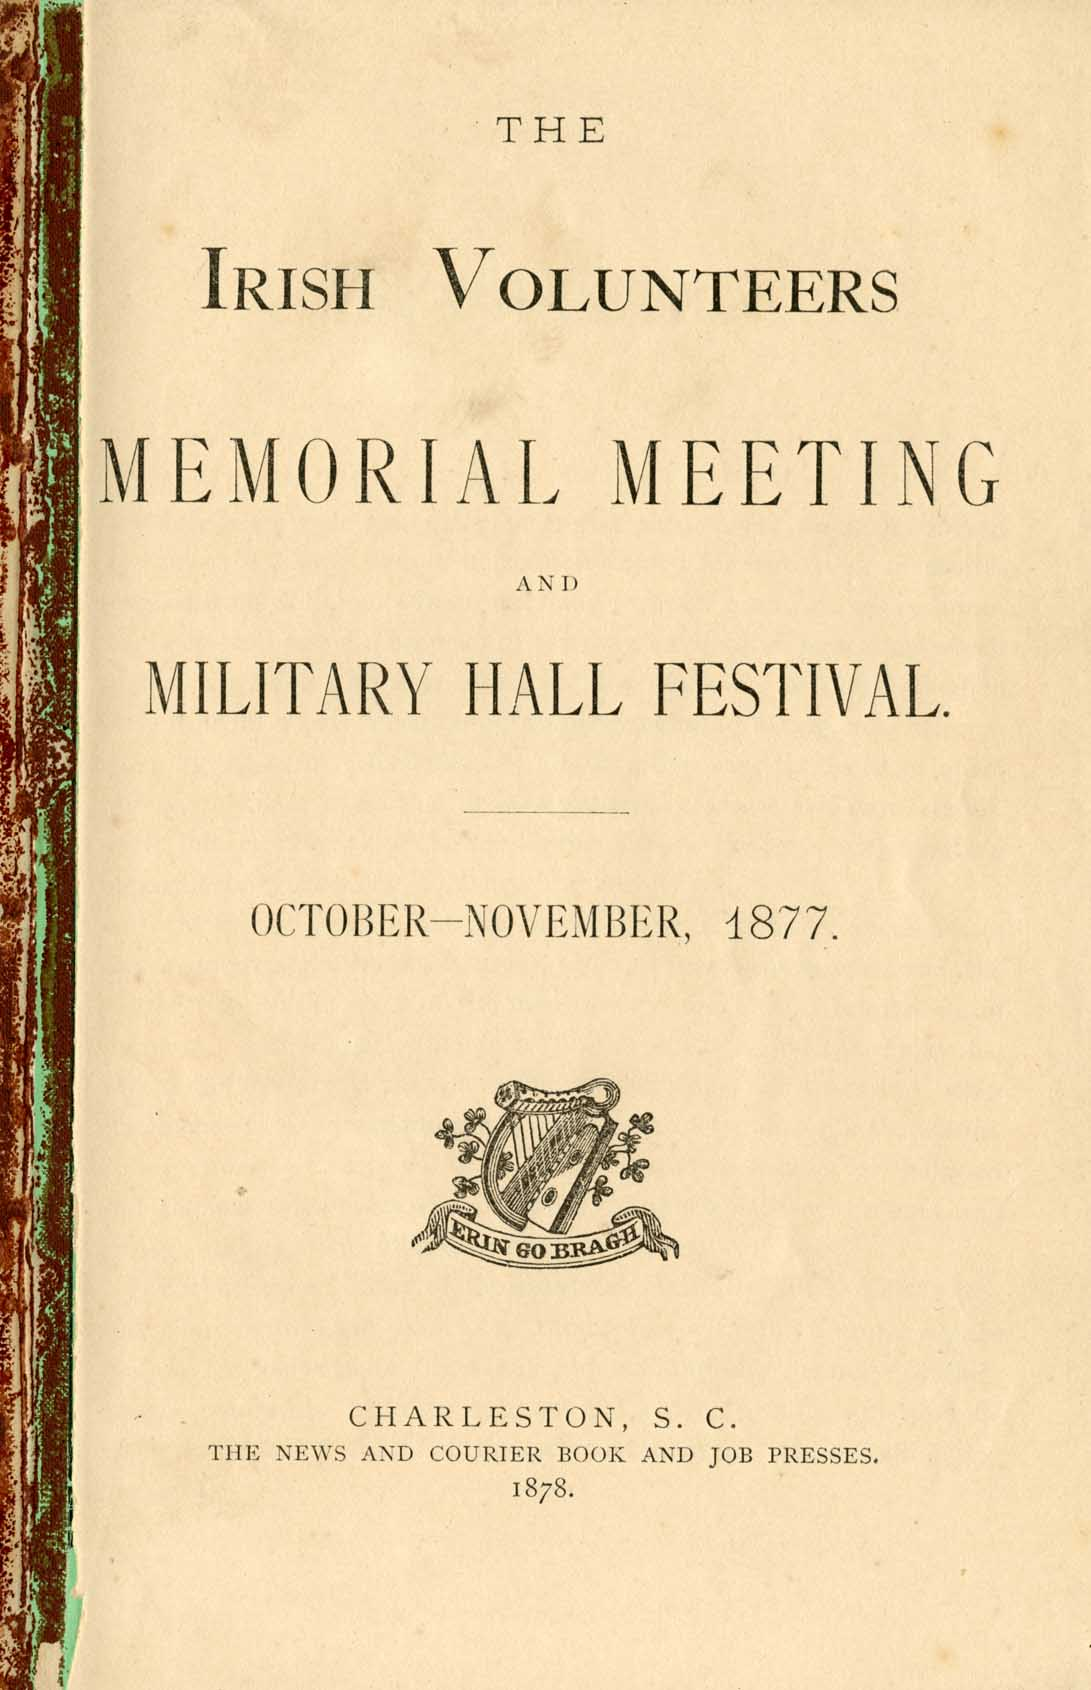 Irish Volunteers Memorial Meeting